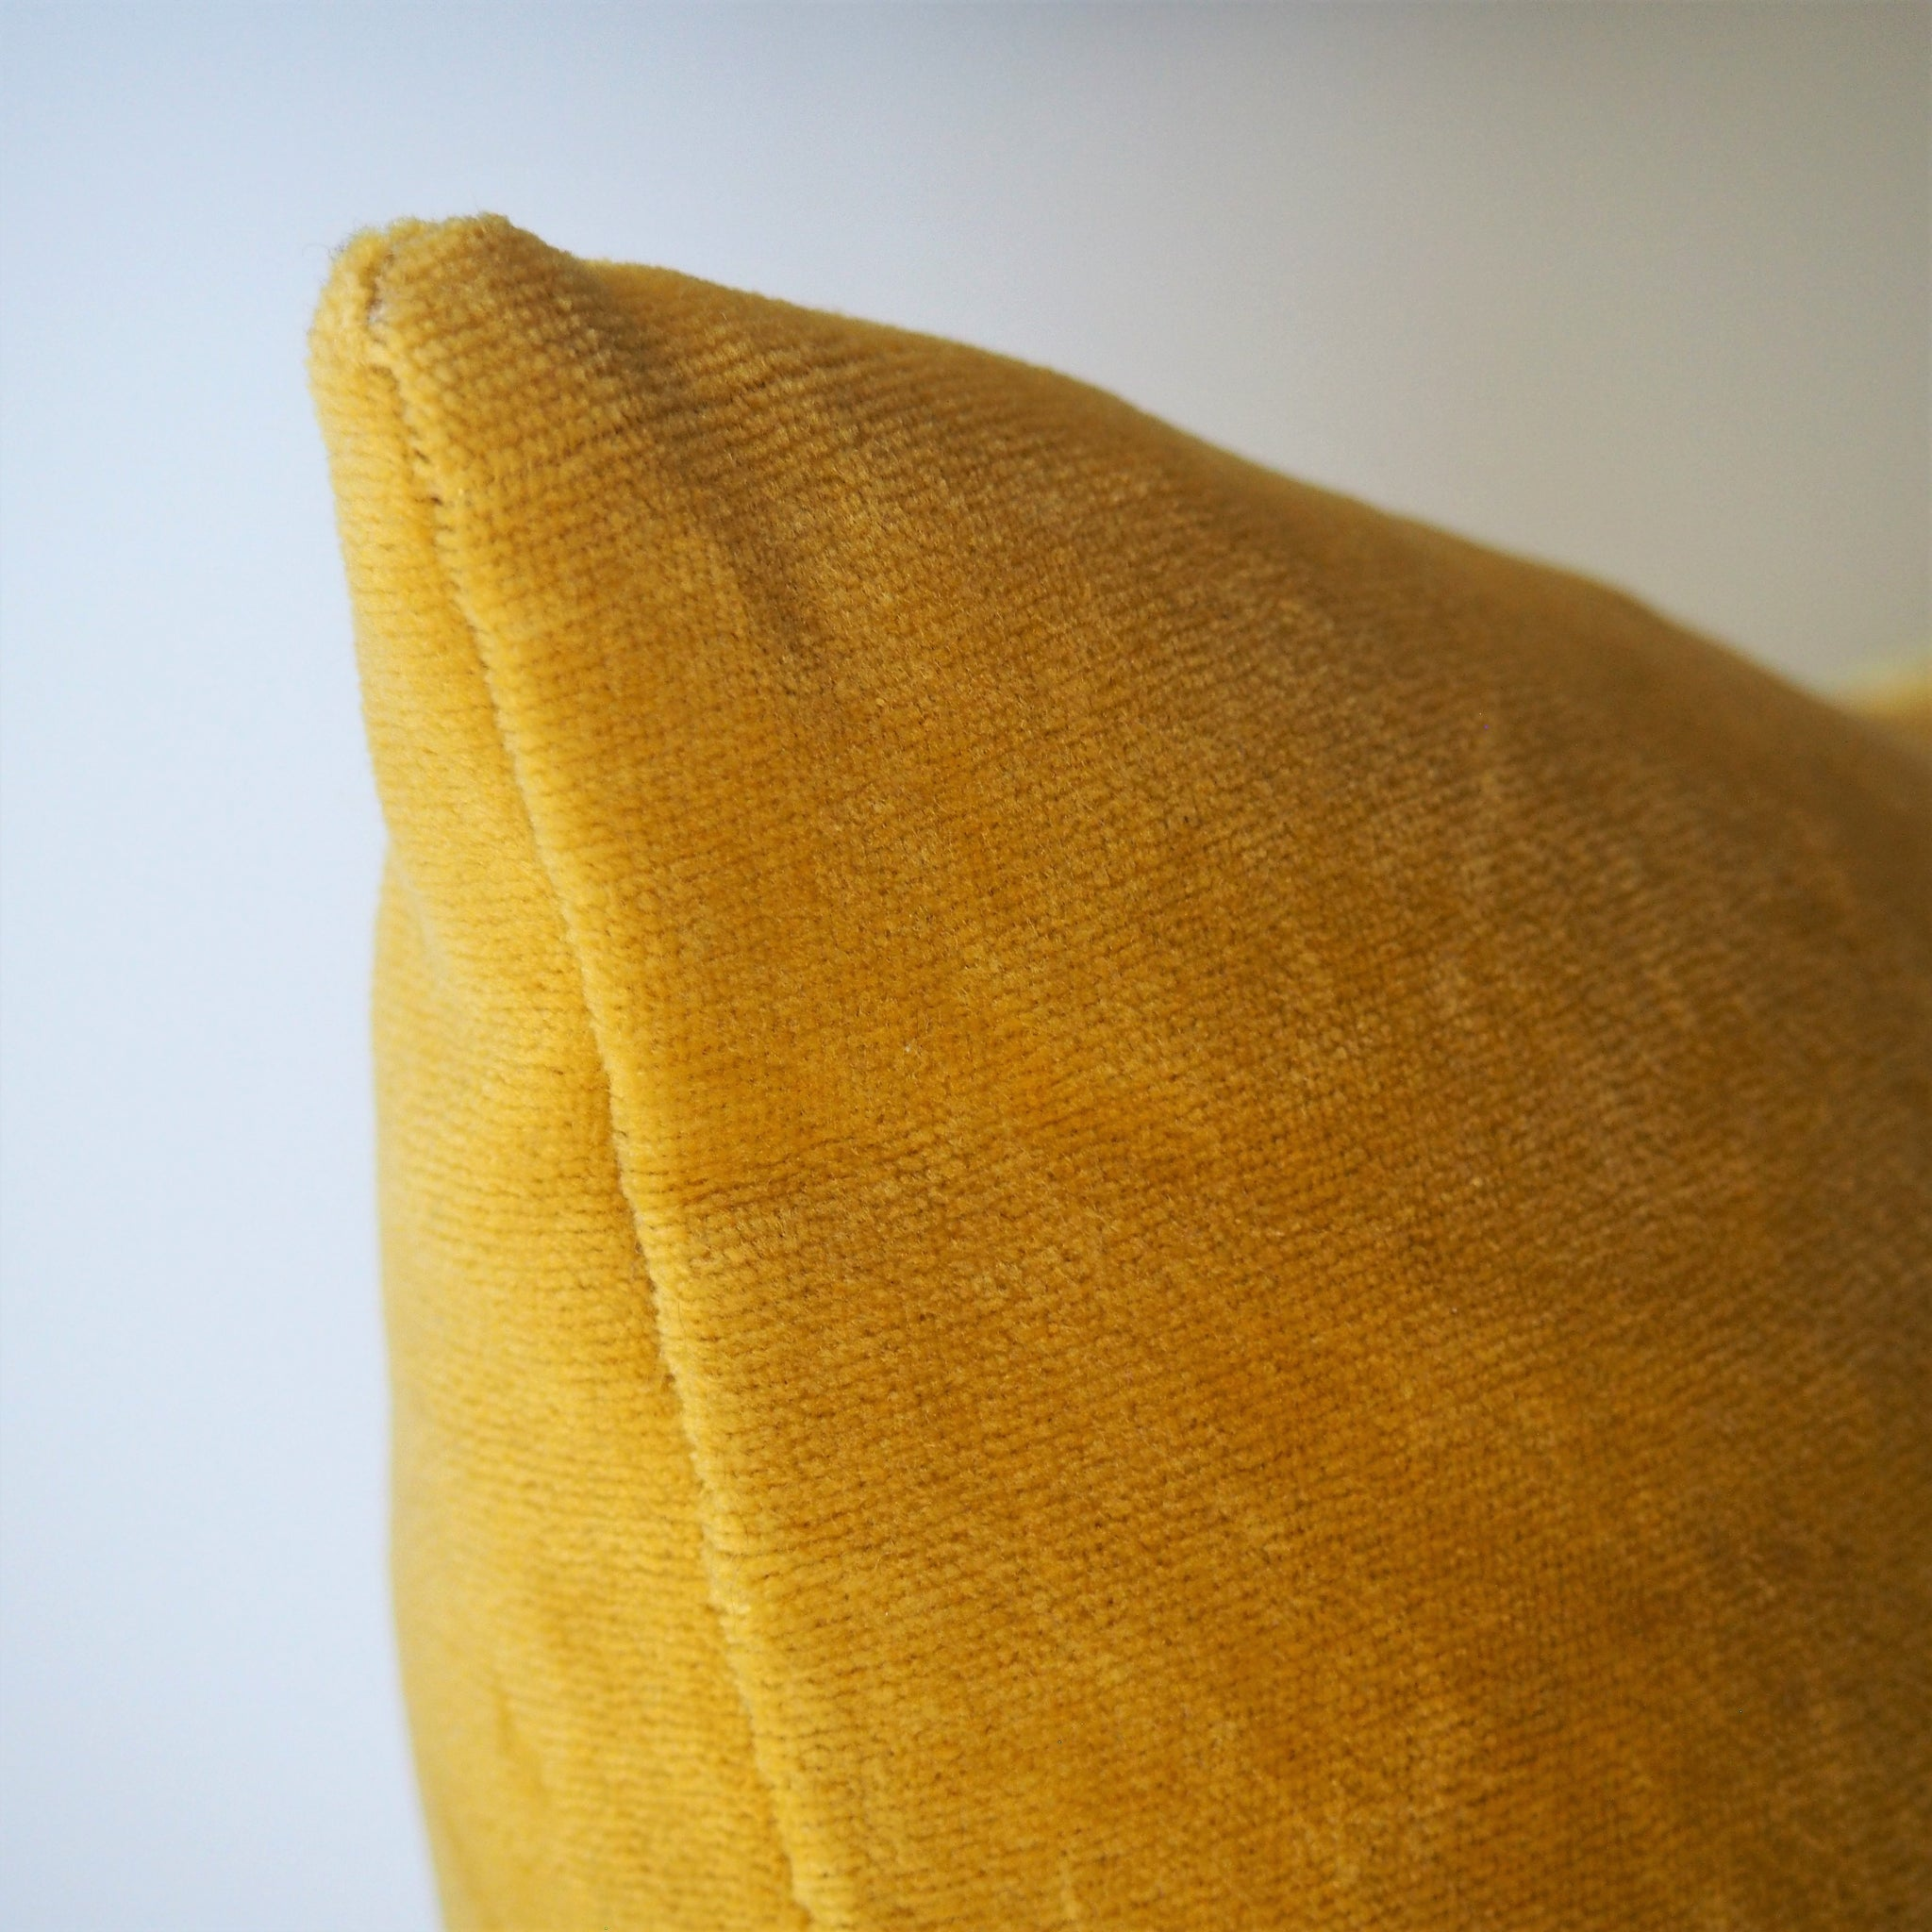 Ethical and eco friendly organic mustard velvet cushion made by former refugees building new lives in New Zealand